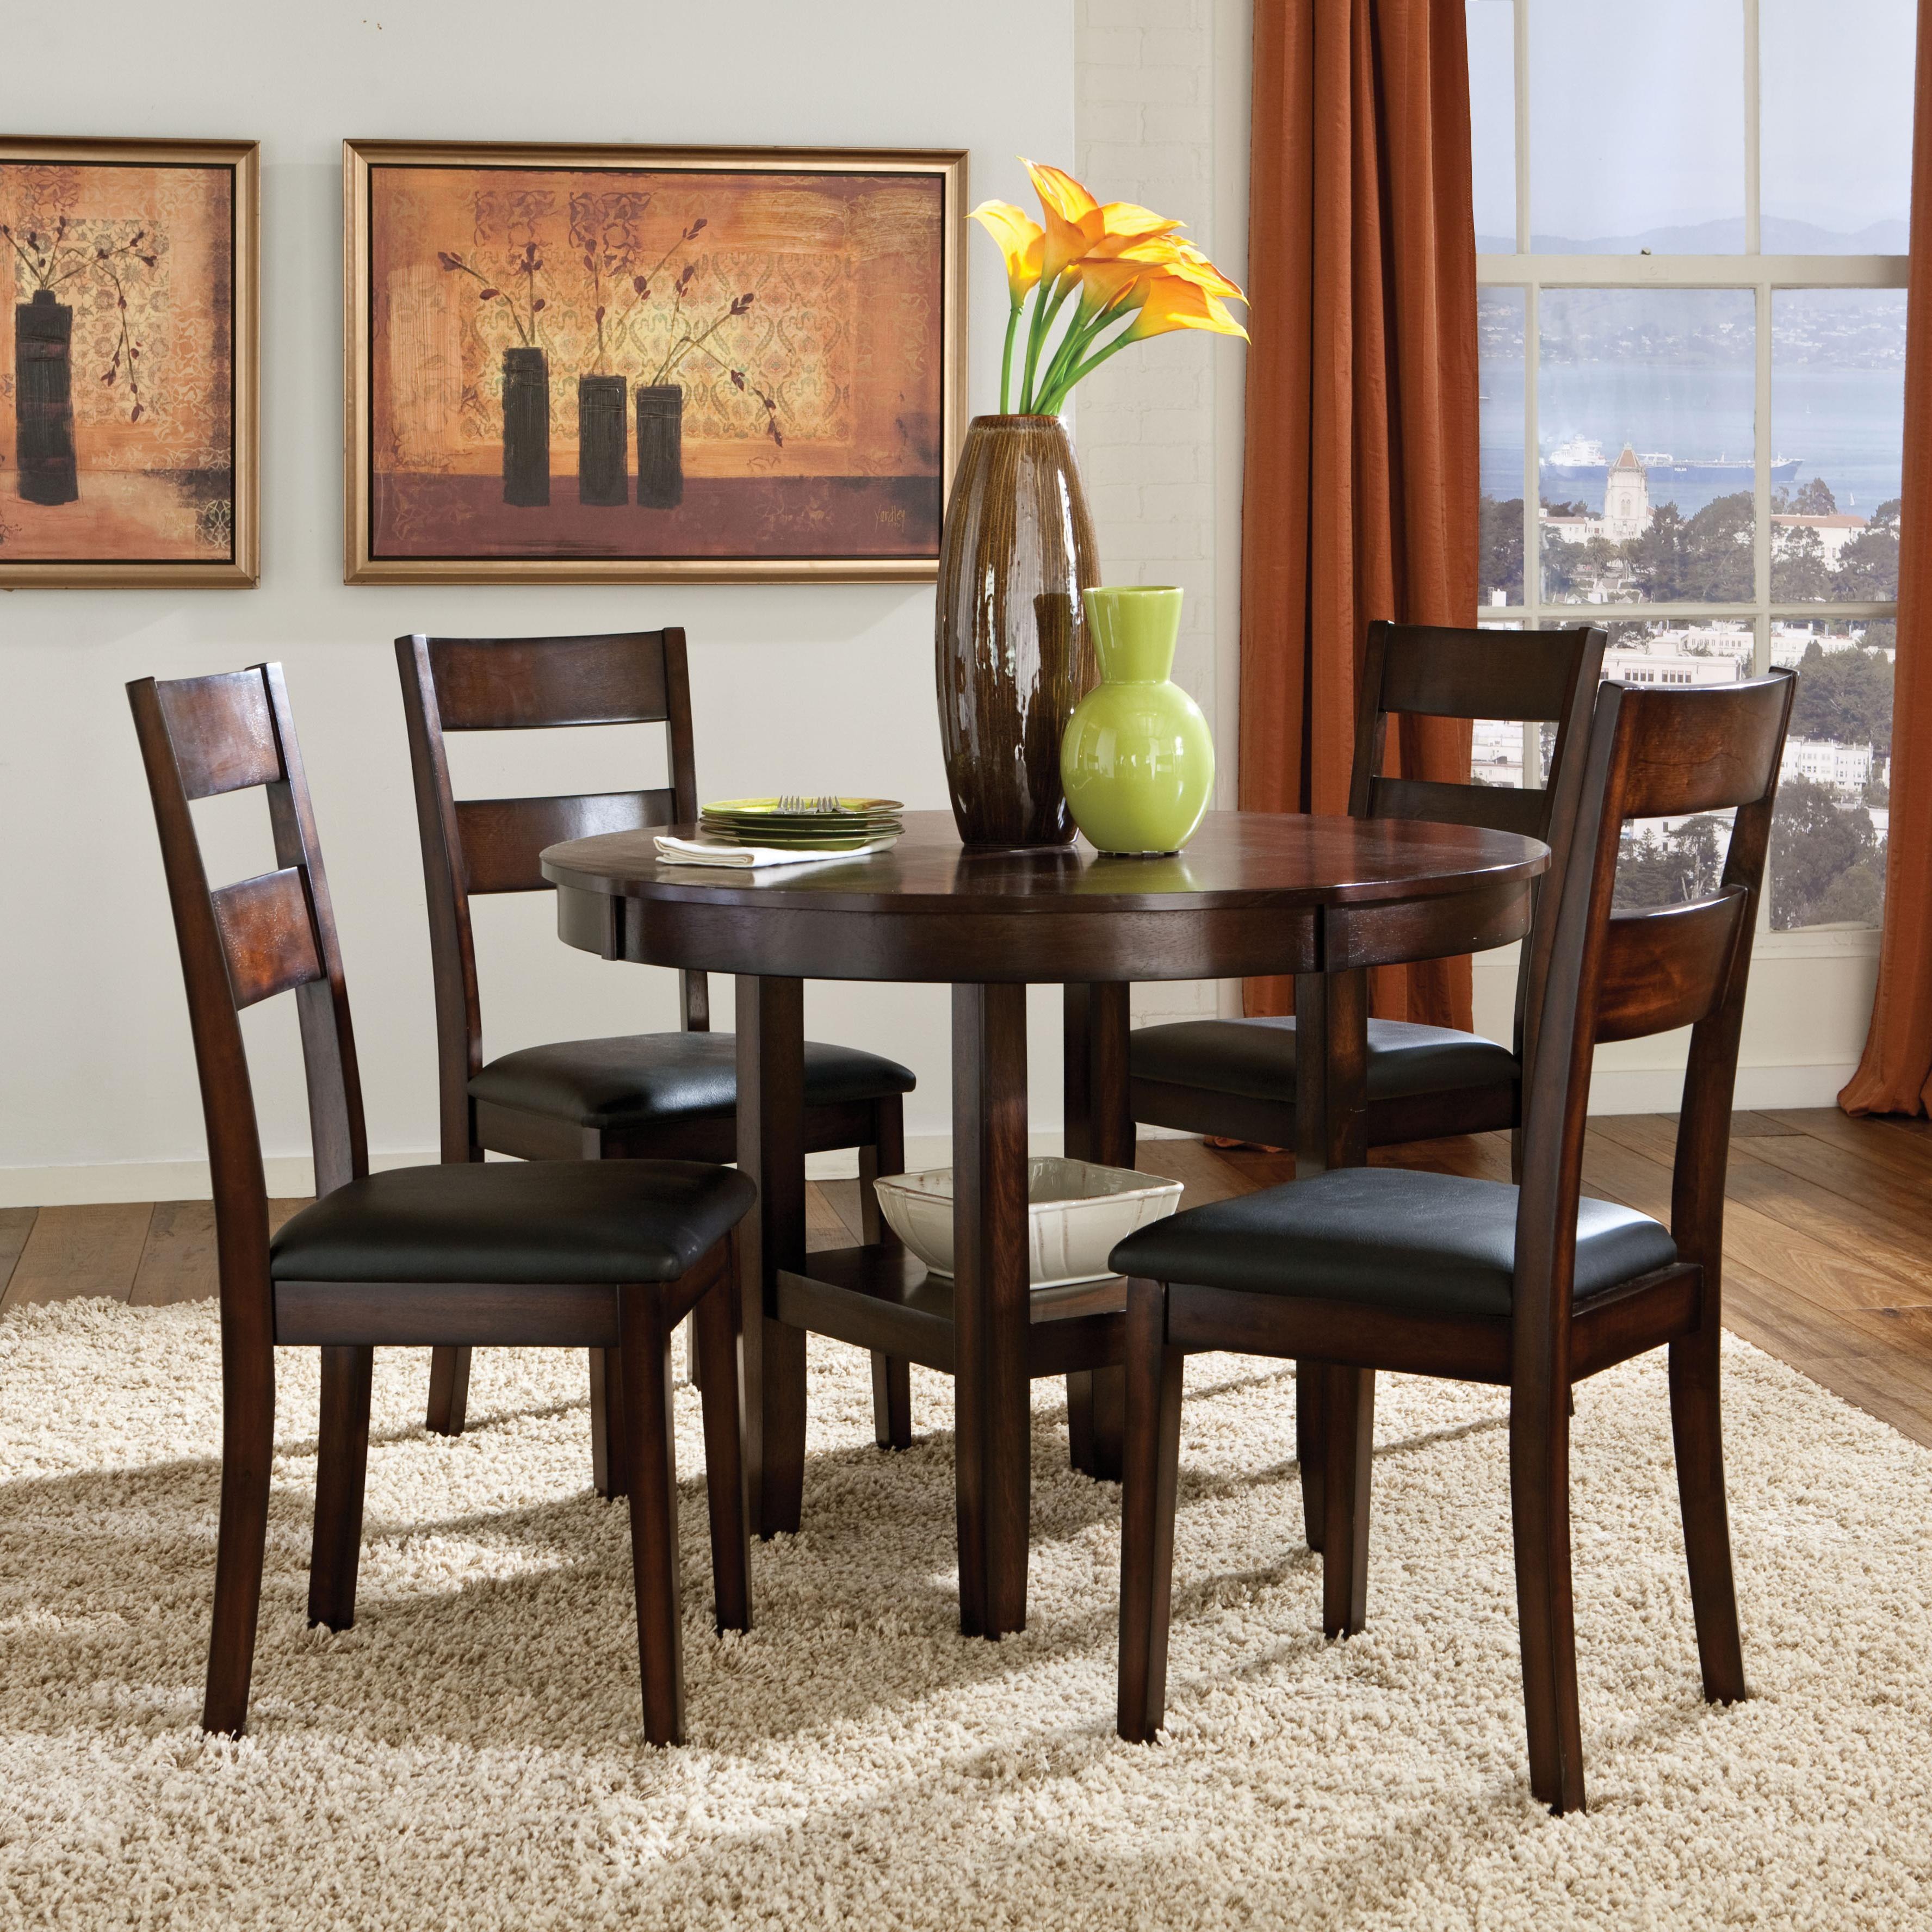 Dining Sets Round Table: Standard Furniture Pendwood 10022 5 Piece Round Table